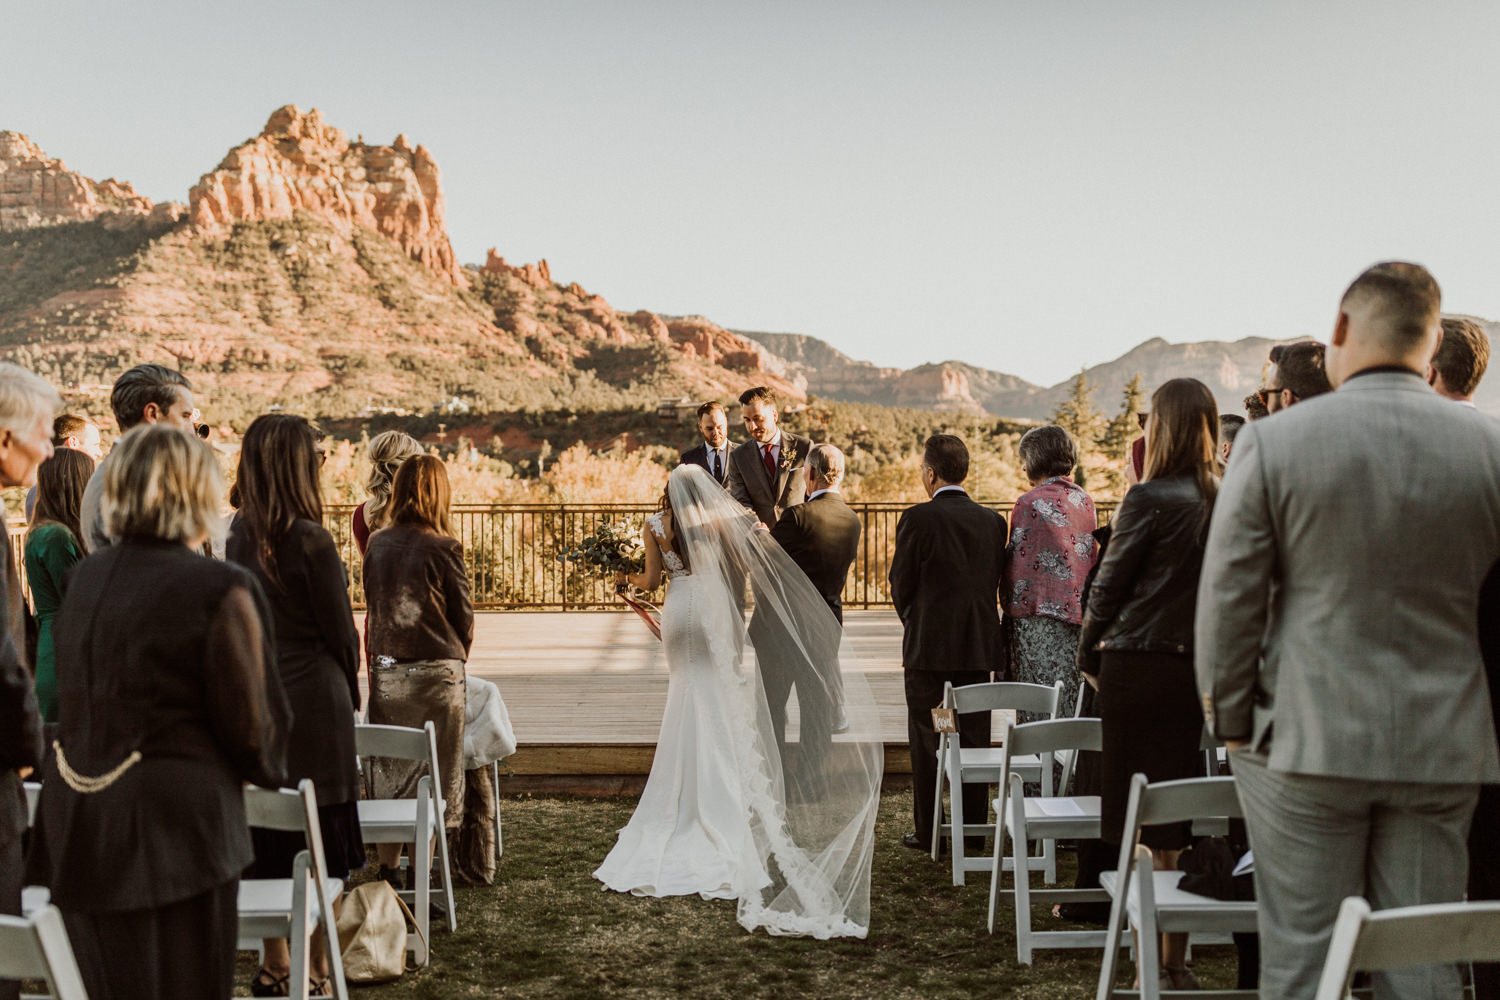 18_intimate-sedona-arizona-wedding-27.jpg